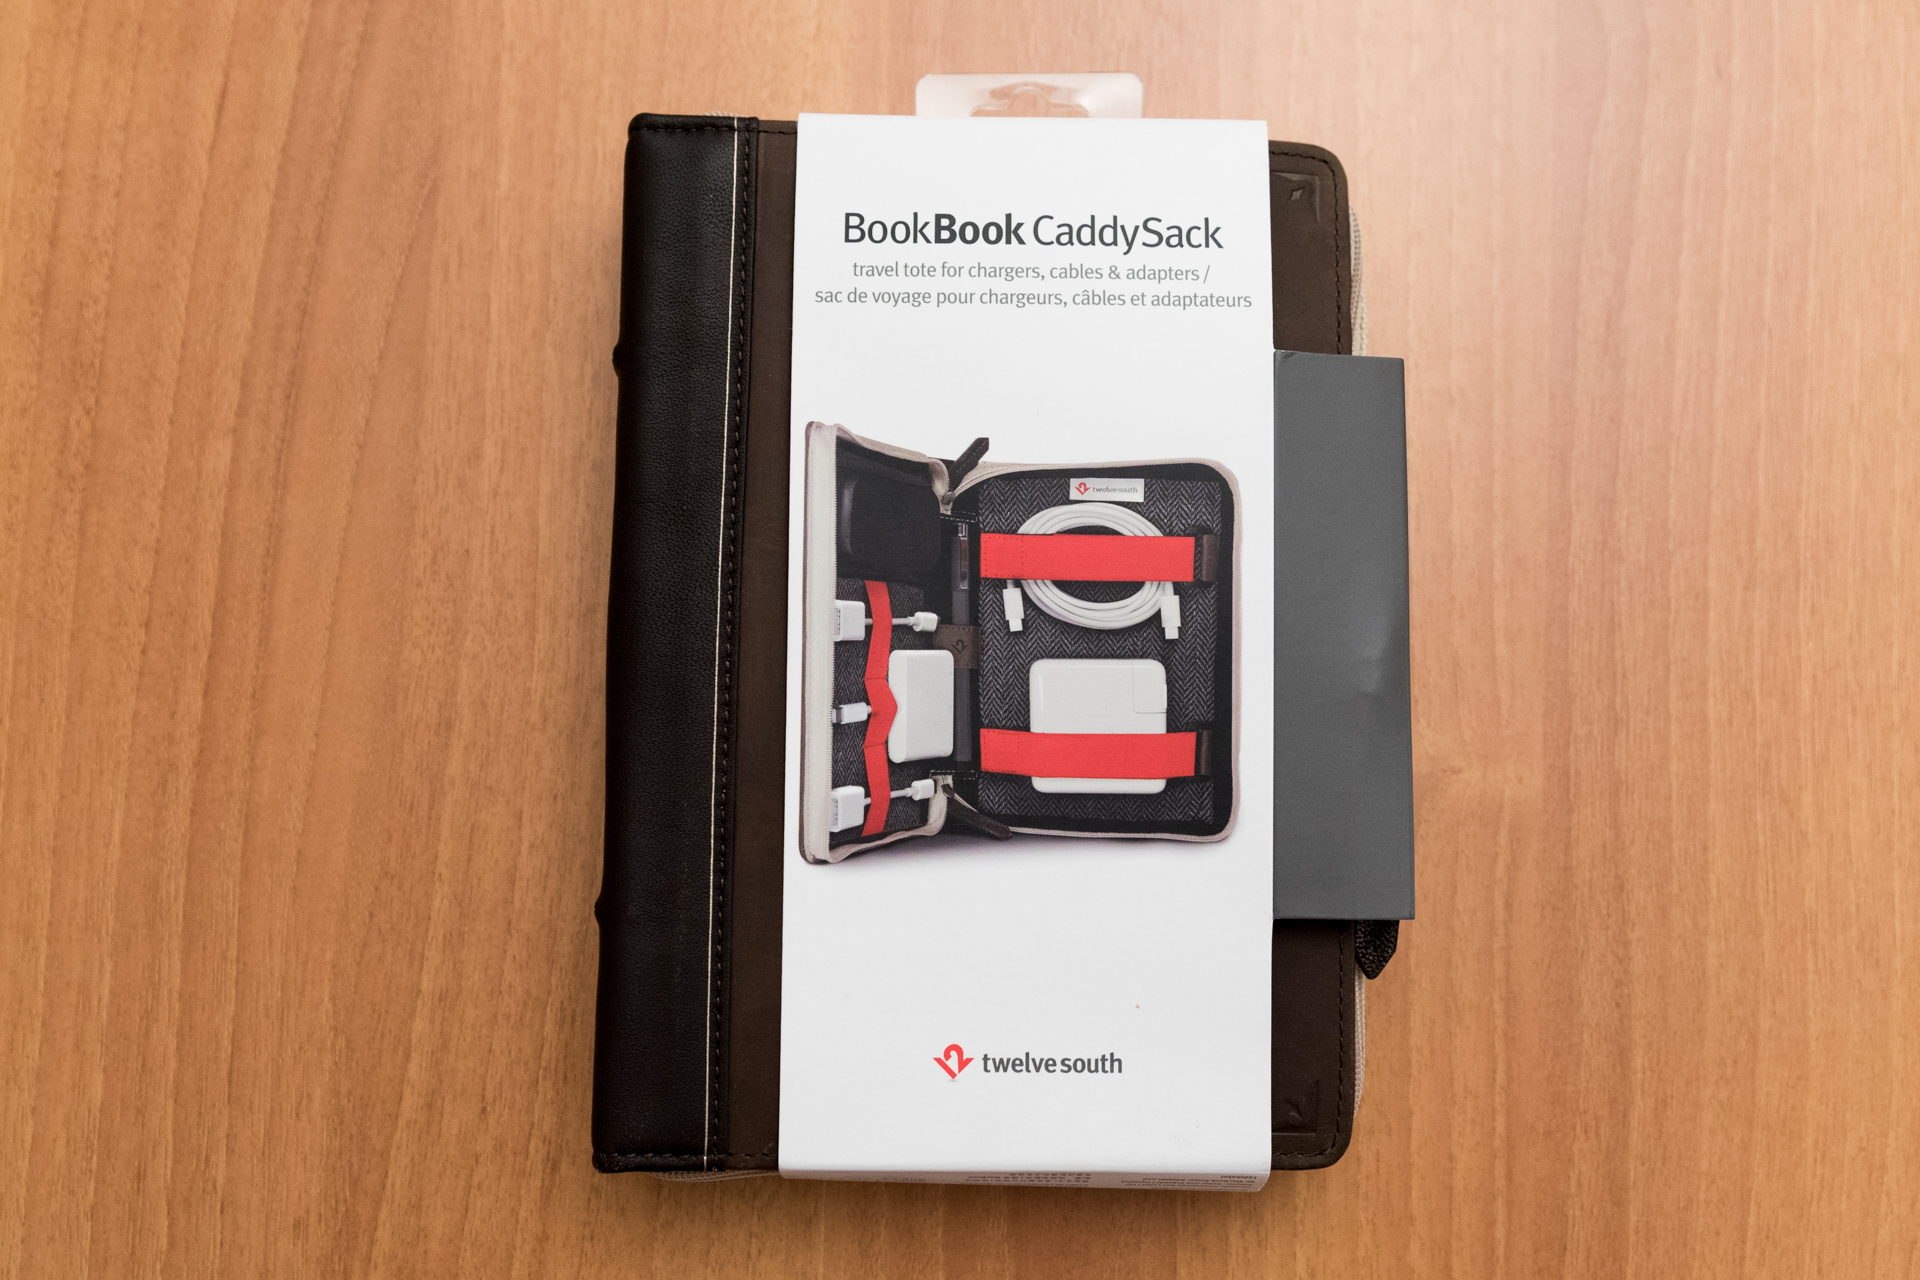 BookBook CaddySack unboxing